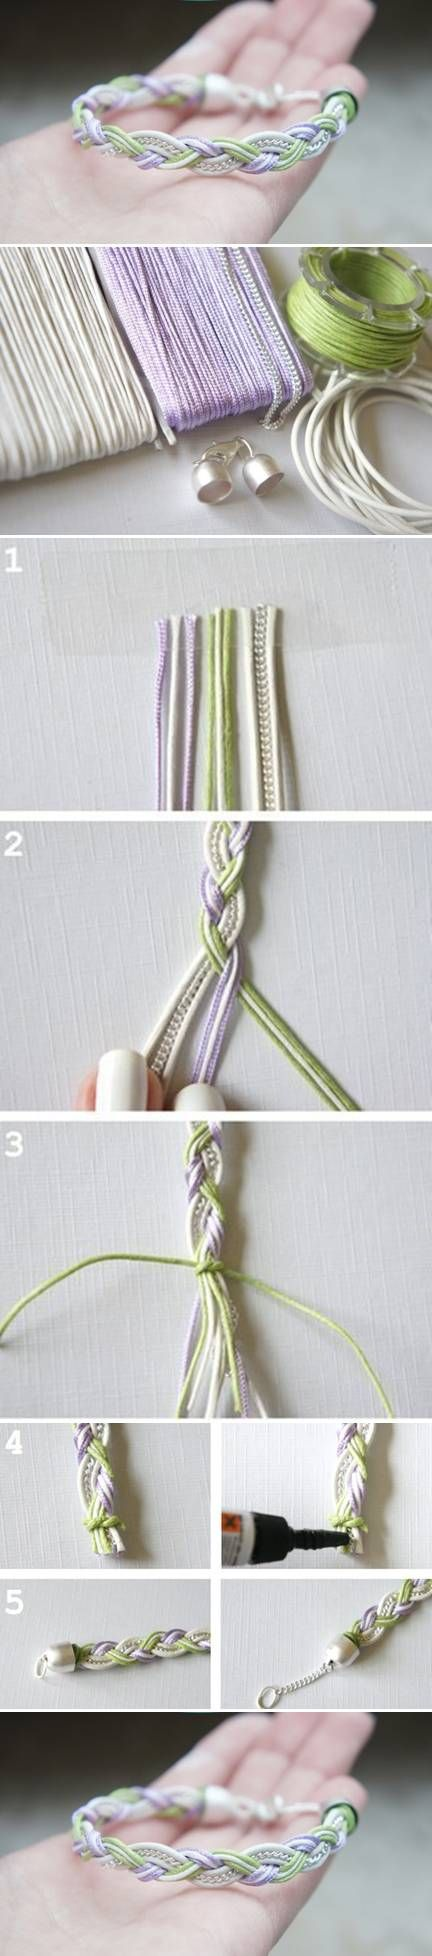 DIY Simple Beautiful Bracelet DIY Simple Beautiful Bracelet